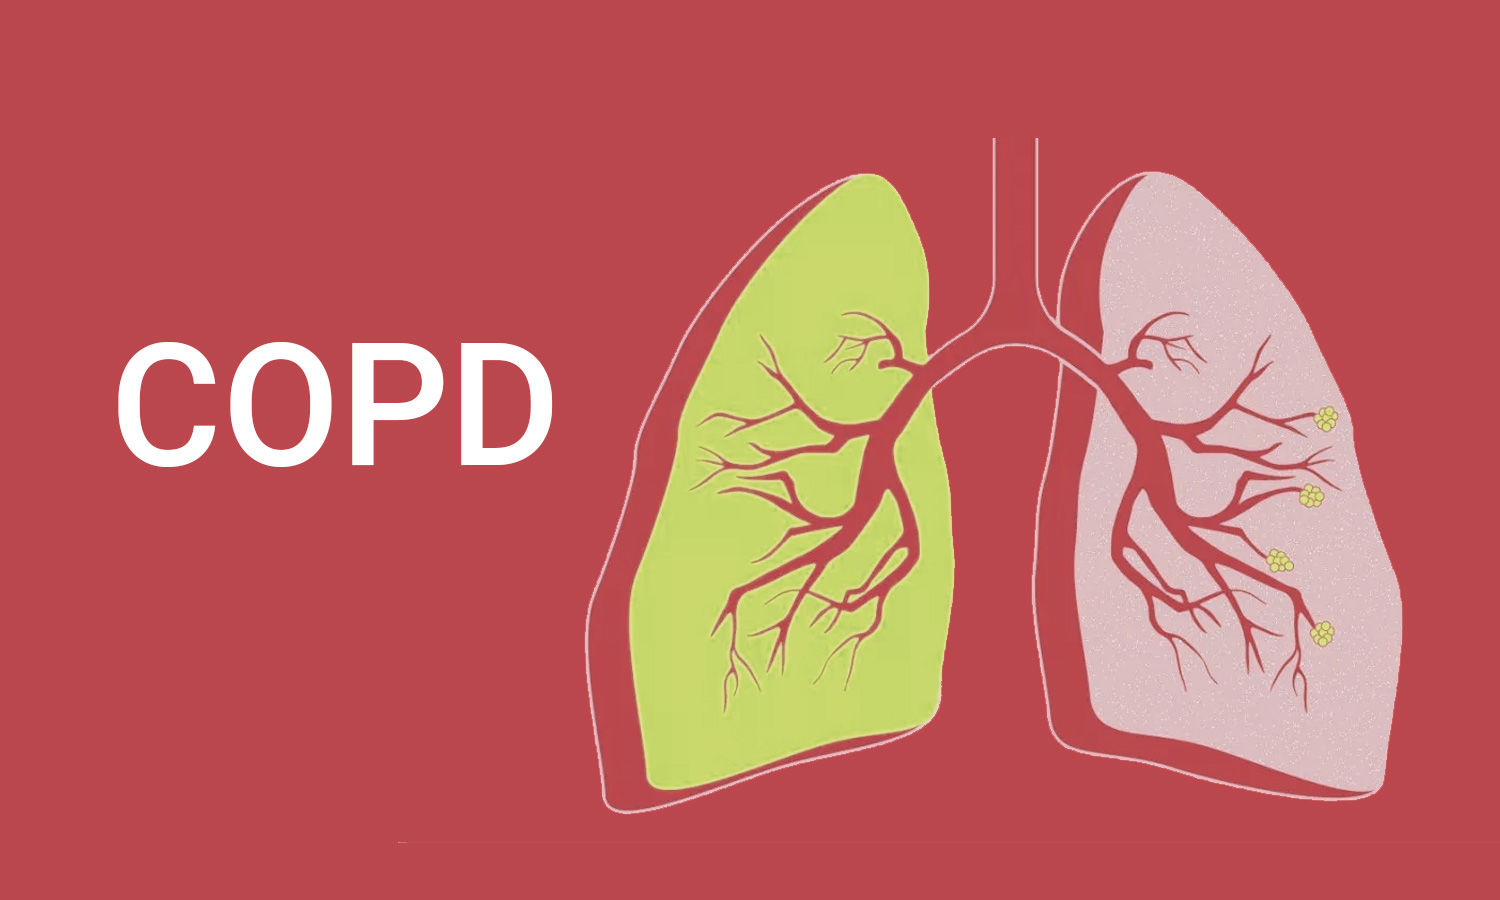 Spirometry bests CT lung in diagnosing COPD,finds study